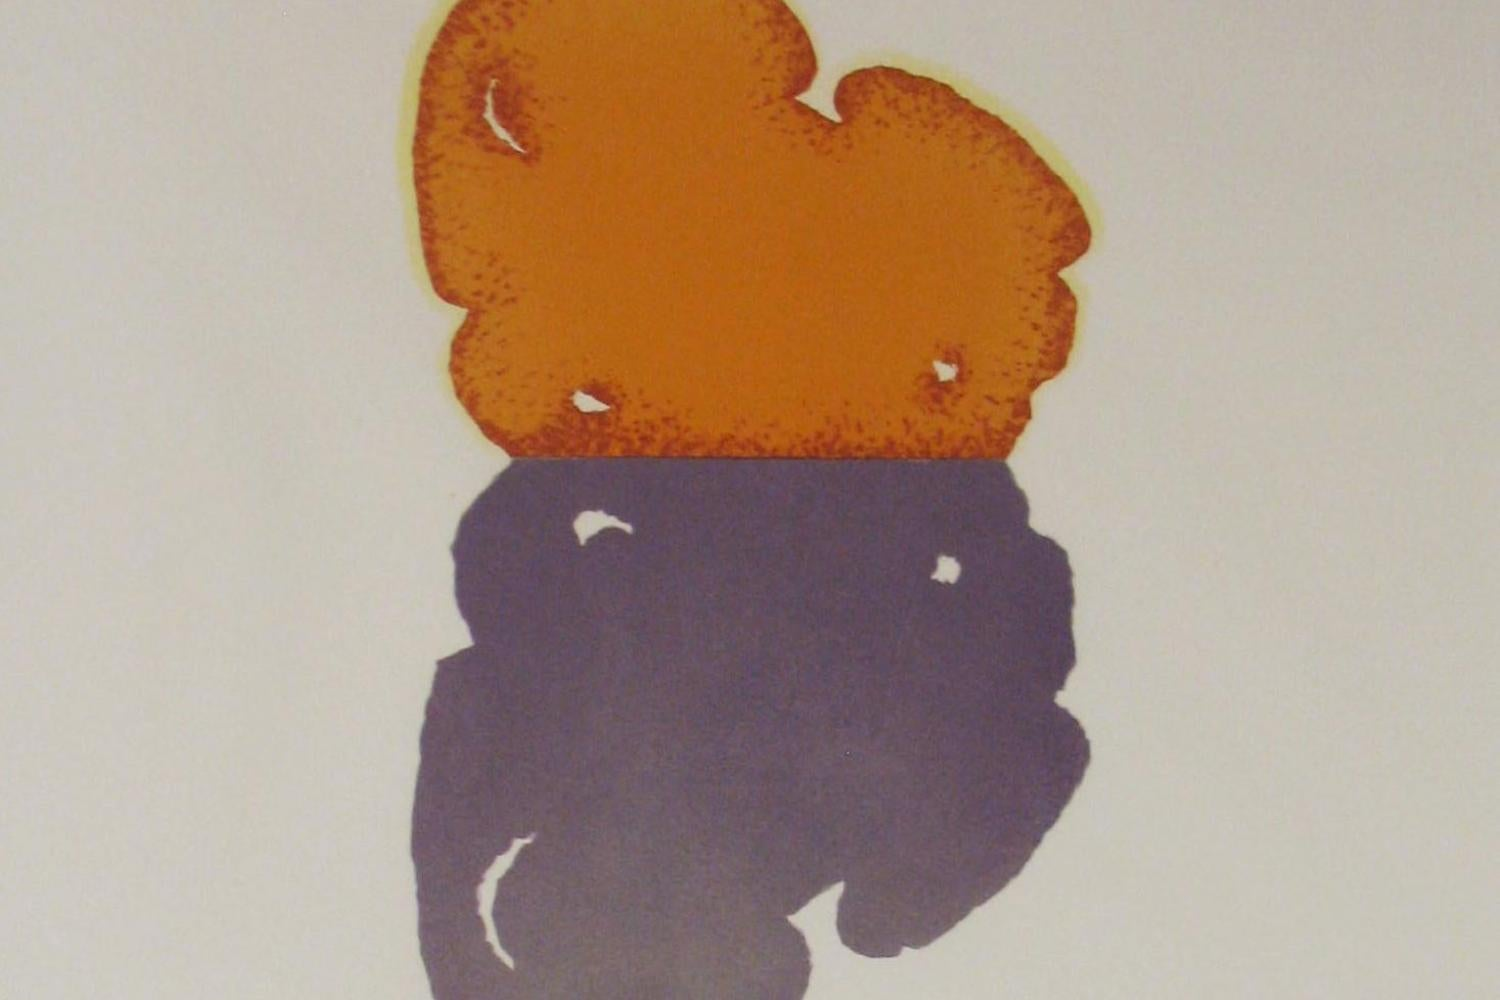 An abstract print with fields of orange and purple on a white page